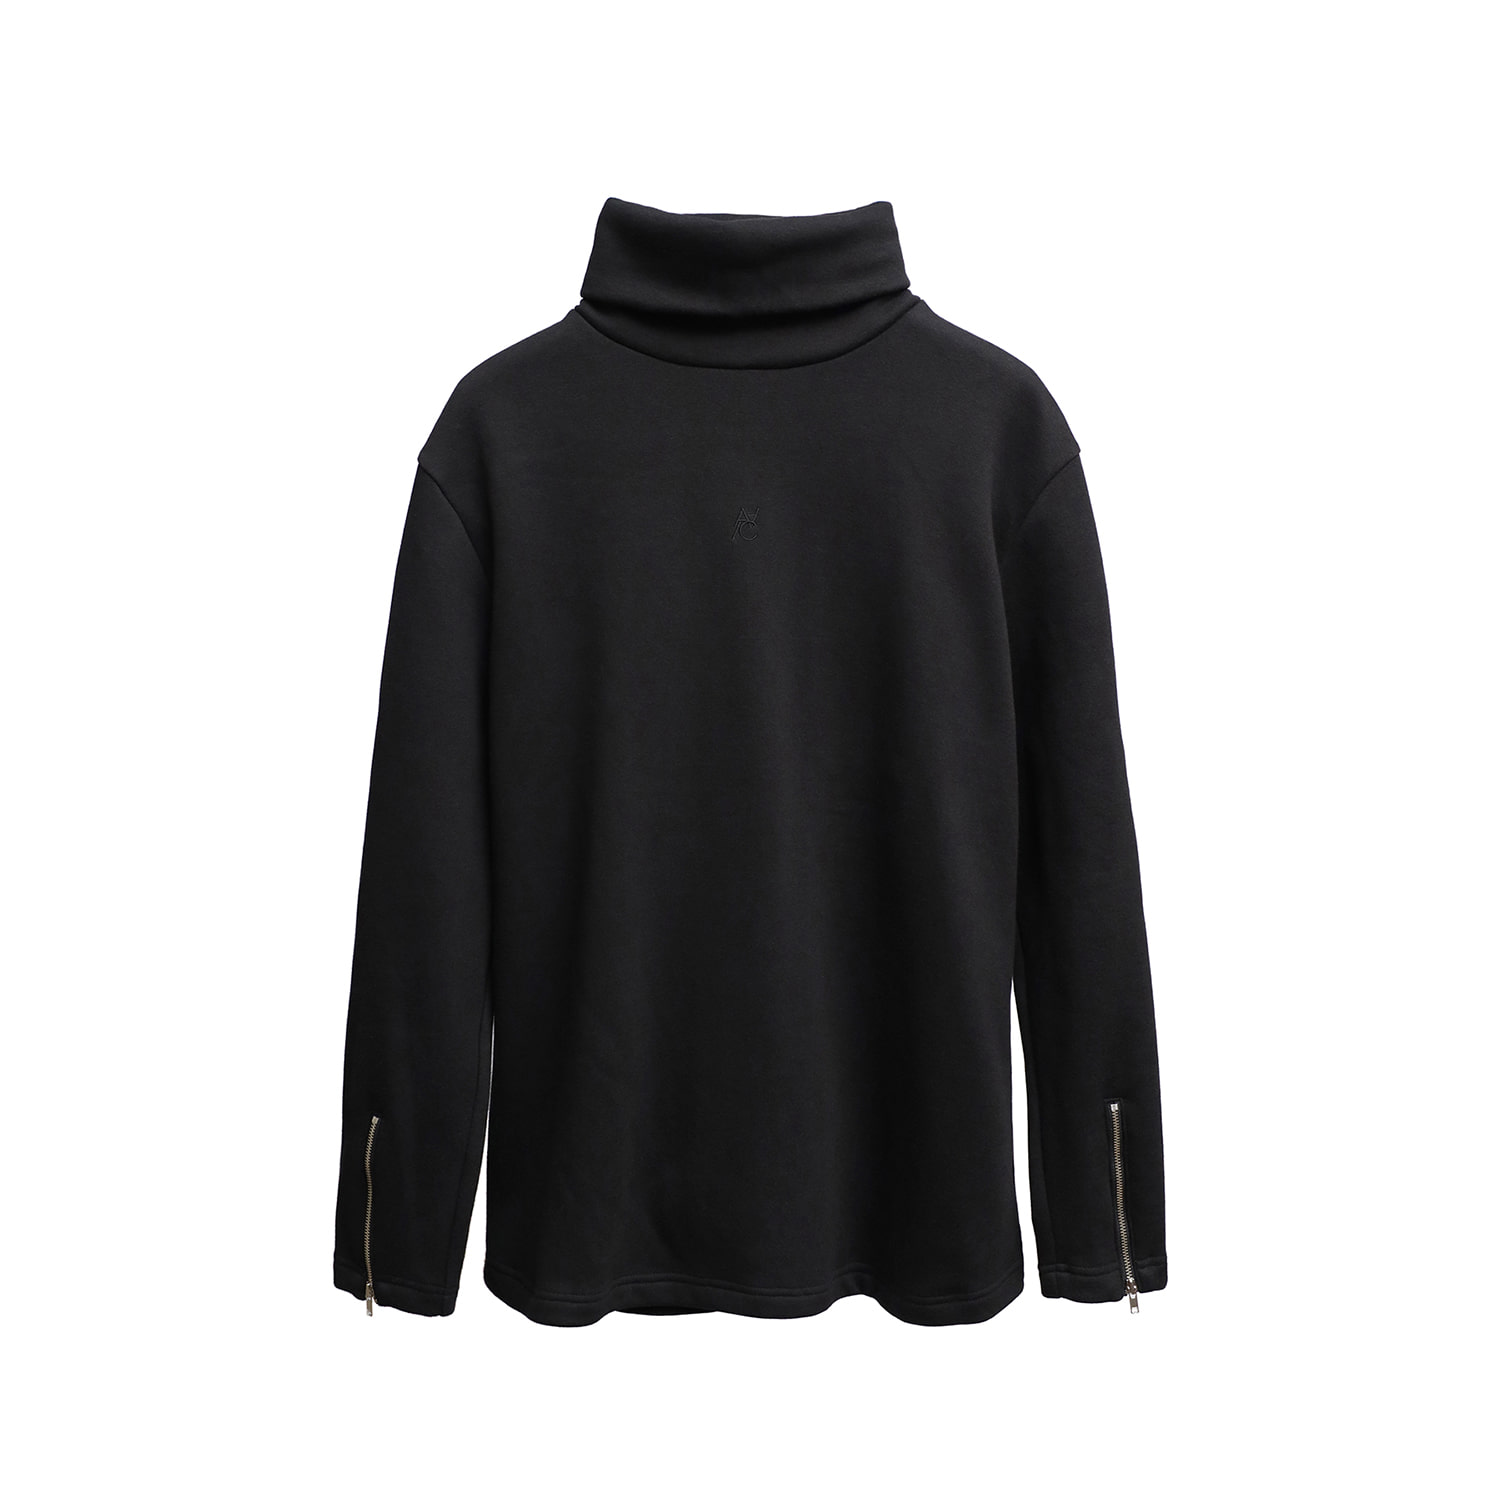 Zippered Turtleneck (black)